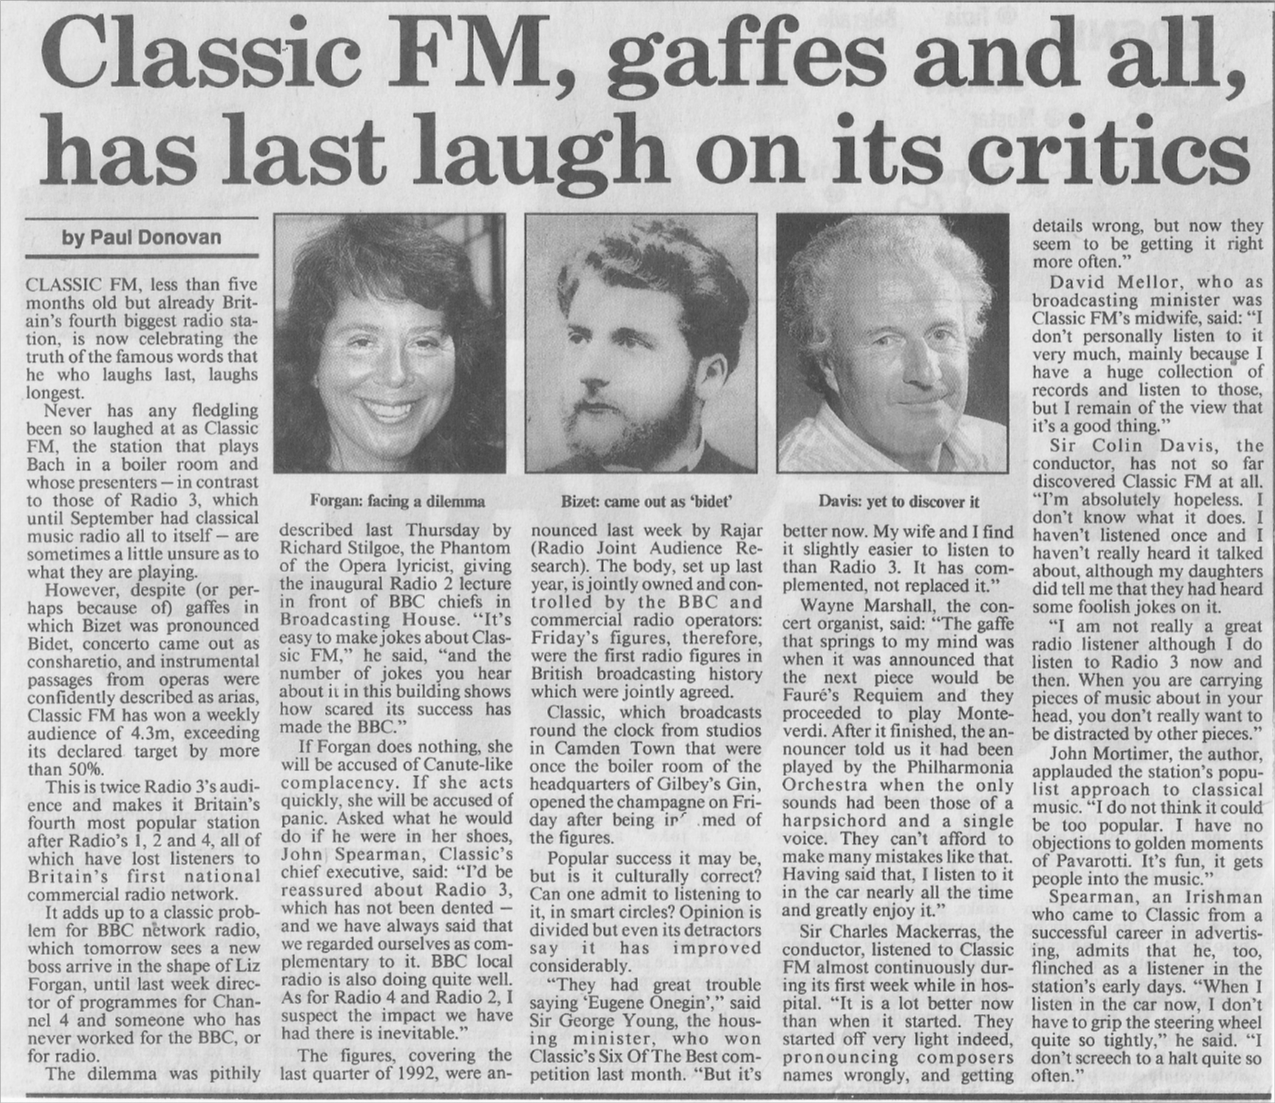 Sunday times 31 january 1993 former radio 3 announcer tony scotland was drafted in to classic fm to help with those tricky bits of classical pronunciation